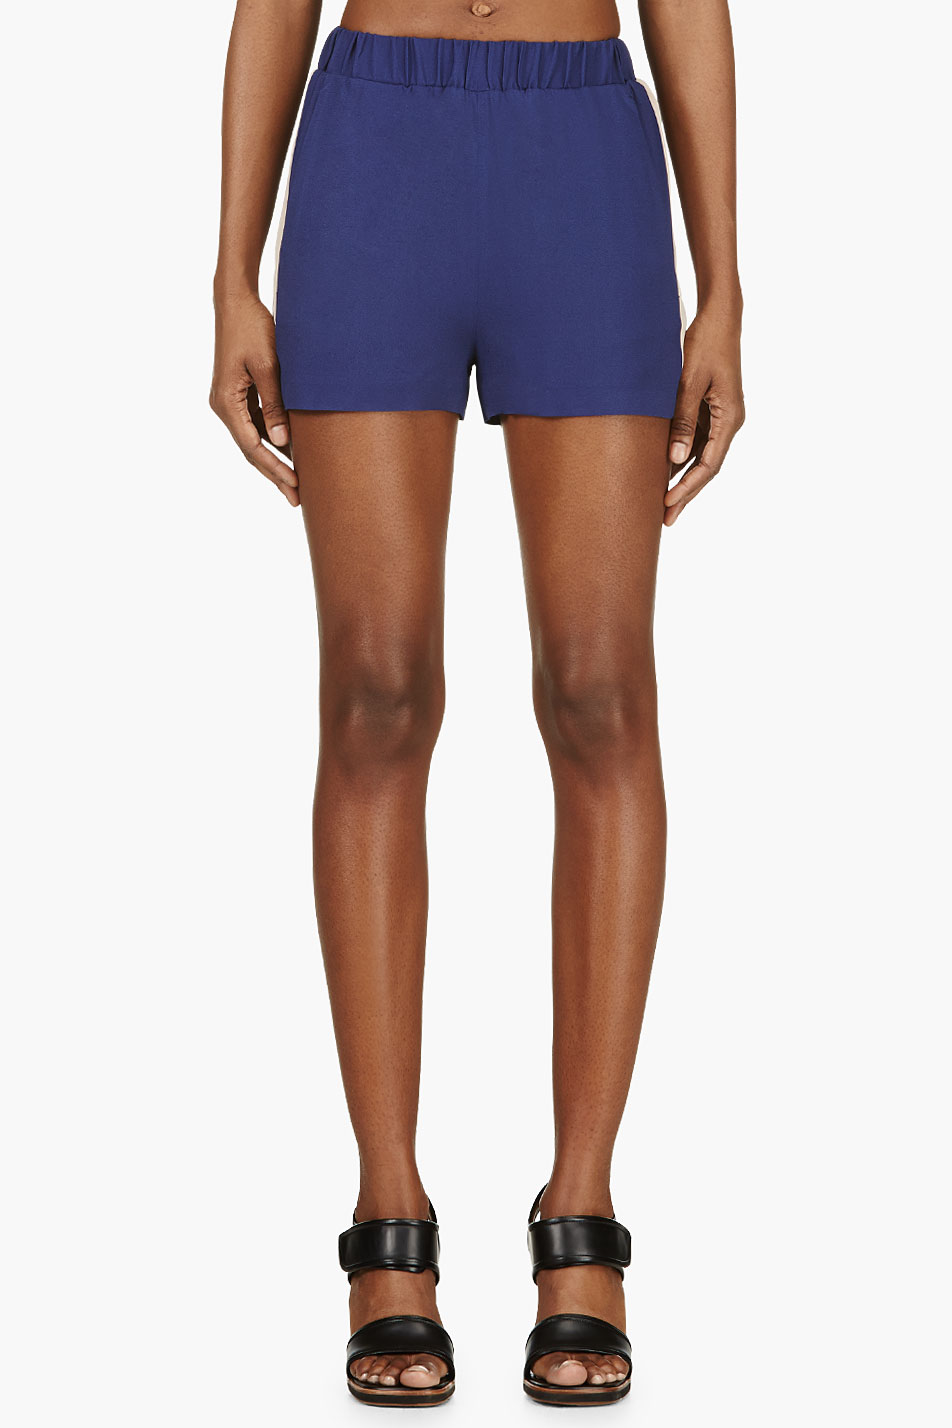 msgm blue and rose crepe bermuda shorts